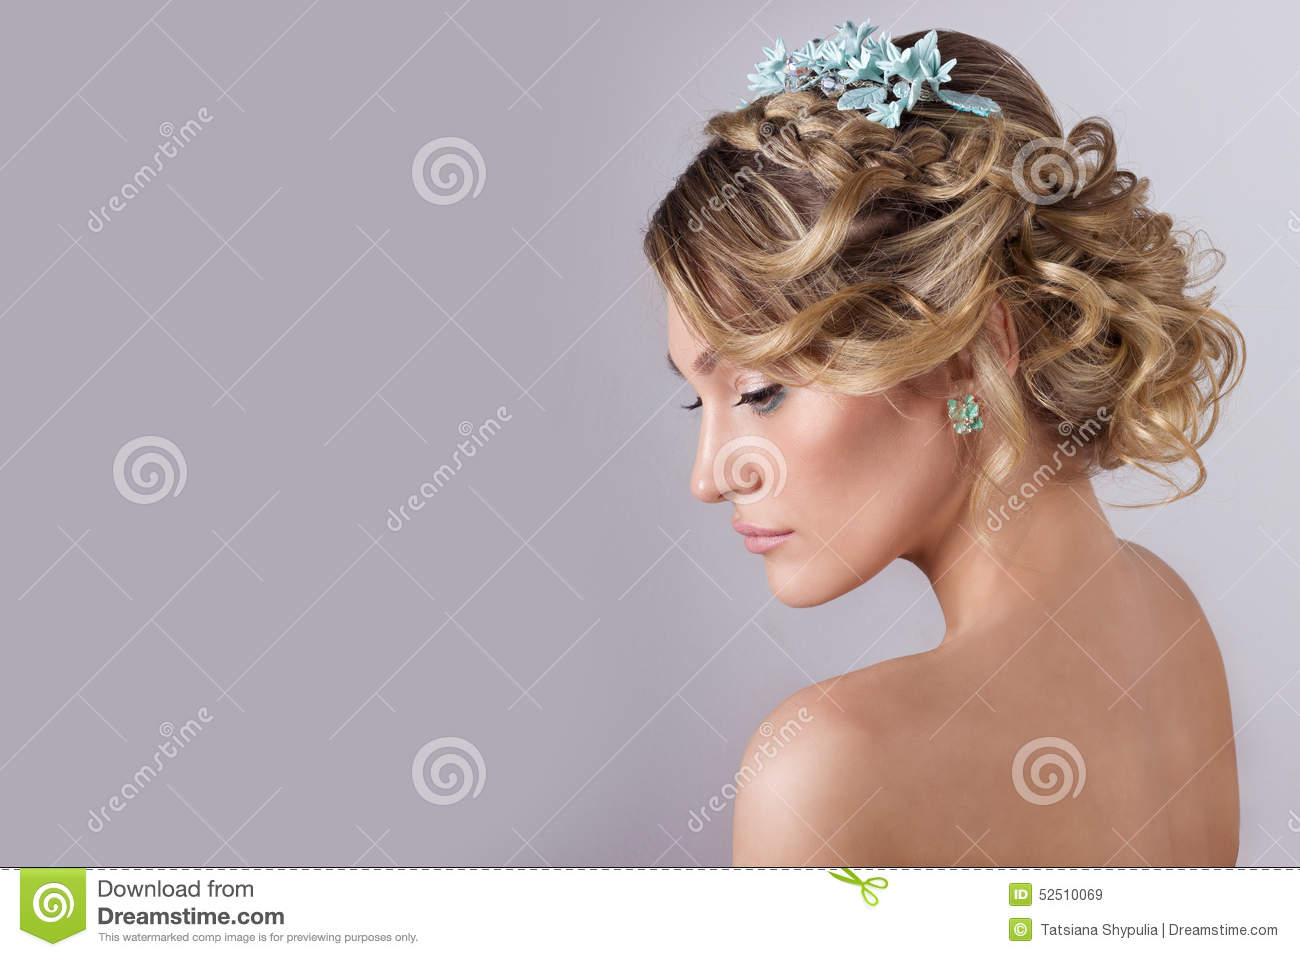 Beautiful young elegant sweet girl in the image of a bride with hair and flowers in her hair , delicate wedding makeup